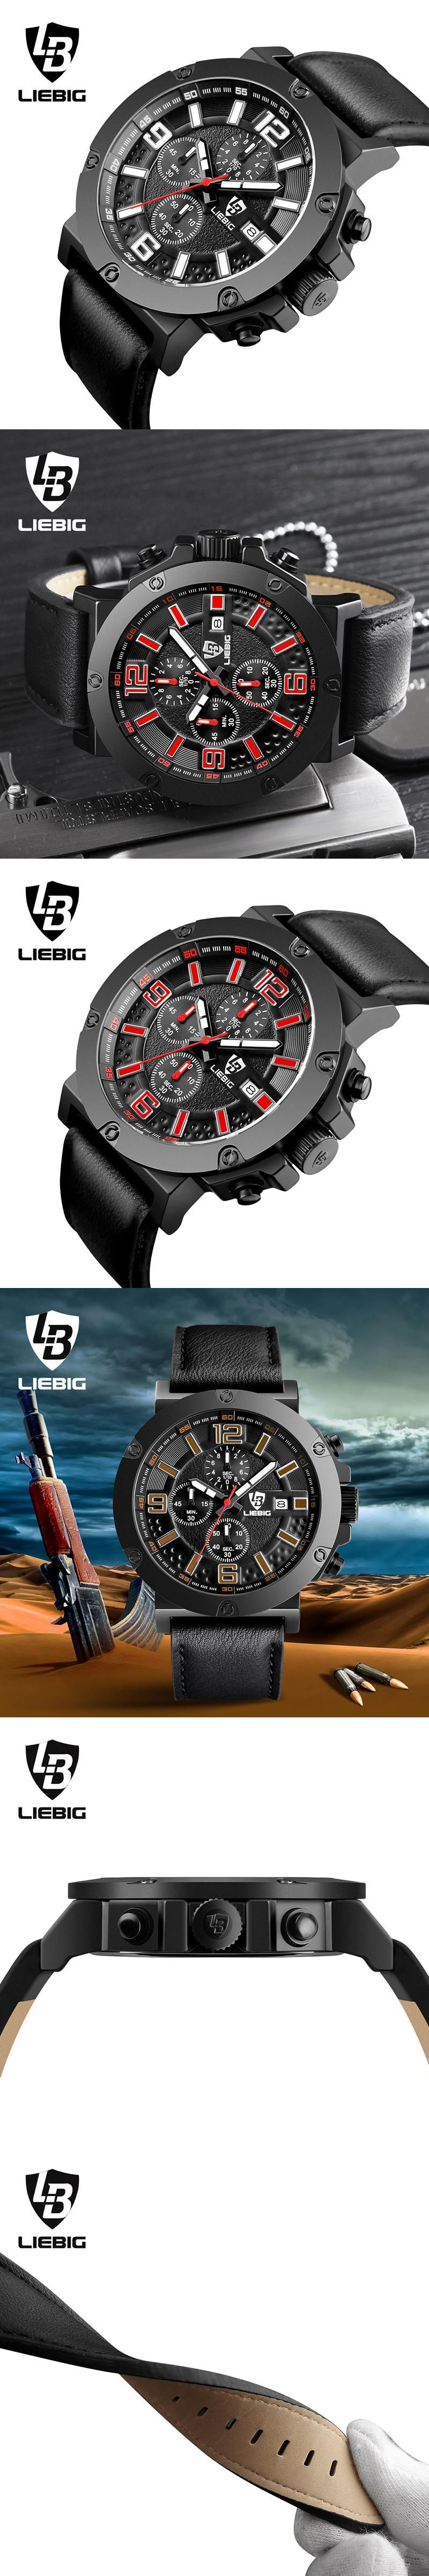 relogio wrist waterproof man business watch masculino brand watches luxury for products men sinobi